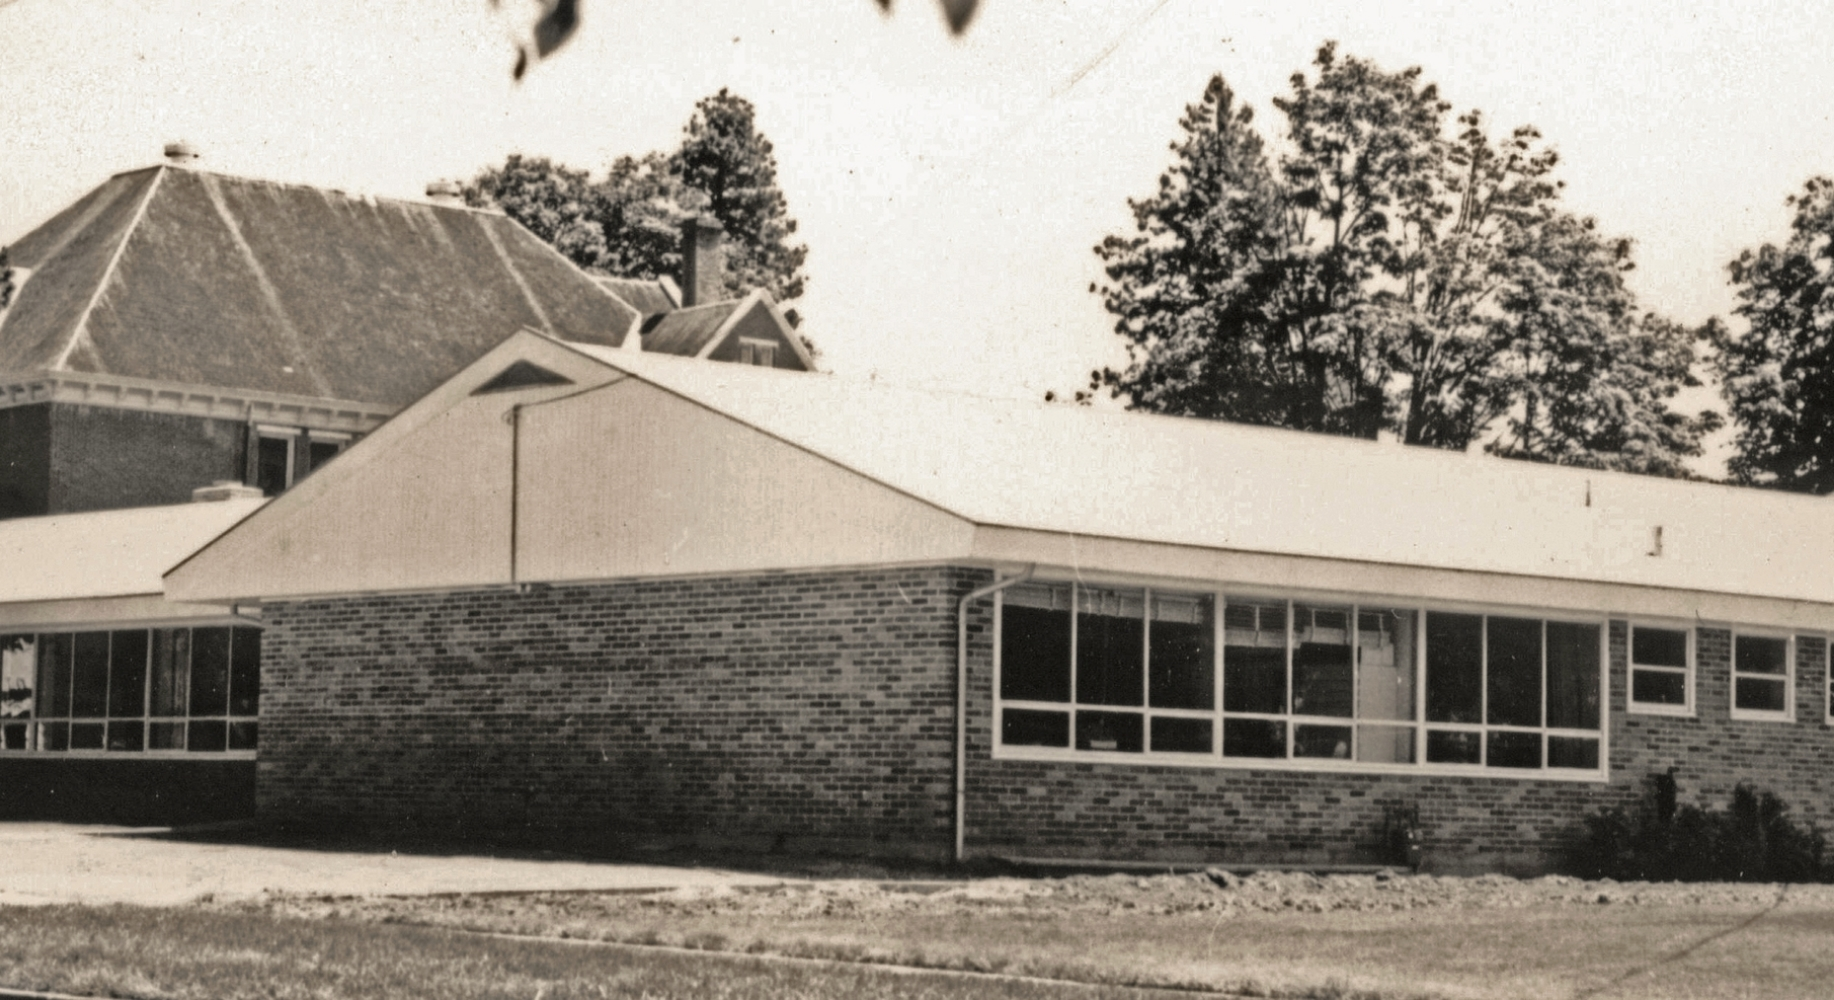 Barclay Press moved in 1961 from Portland to a new building in Newberg that included the offices of Northwest Yearly Meeting. The building is now a part of Newberg Friends Church facilities.